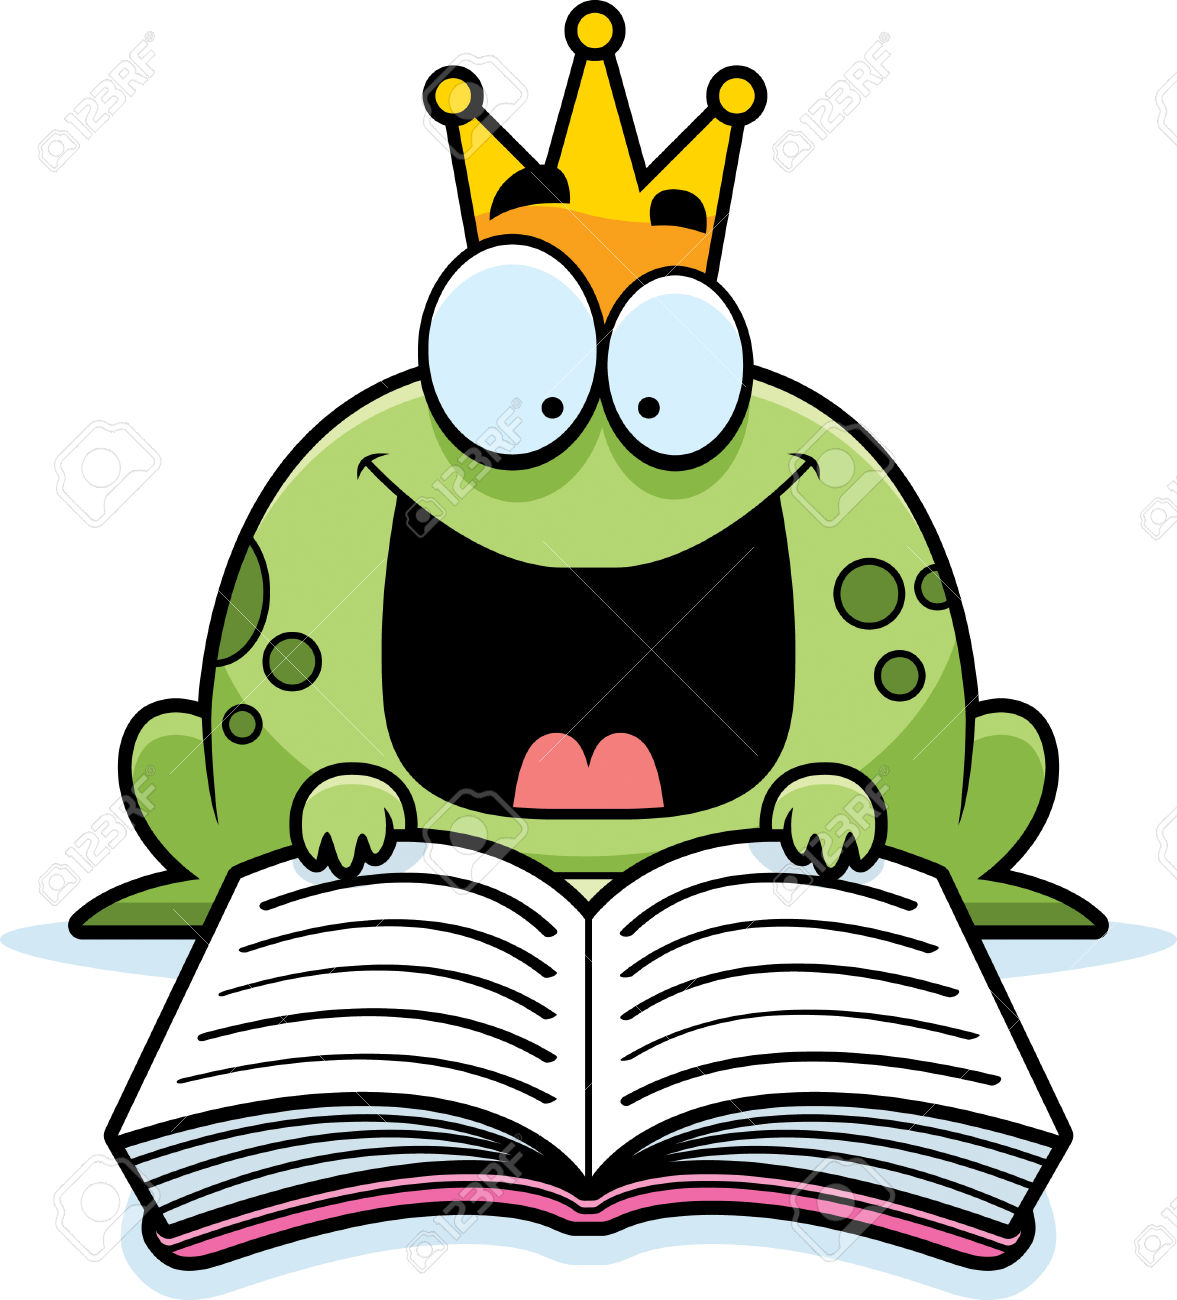 A Cartoon Illustration Of A Frog Prince Reading A Book. Royalty.